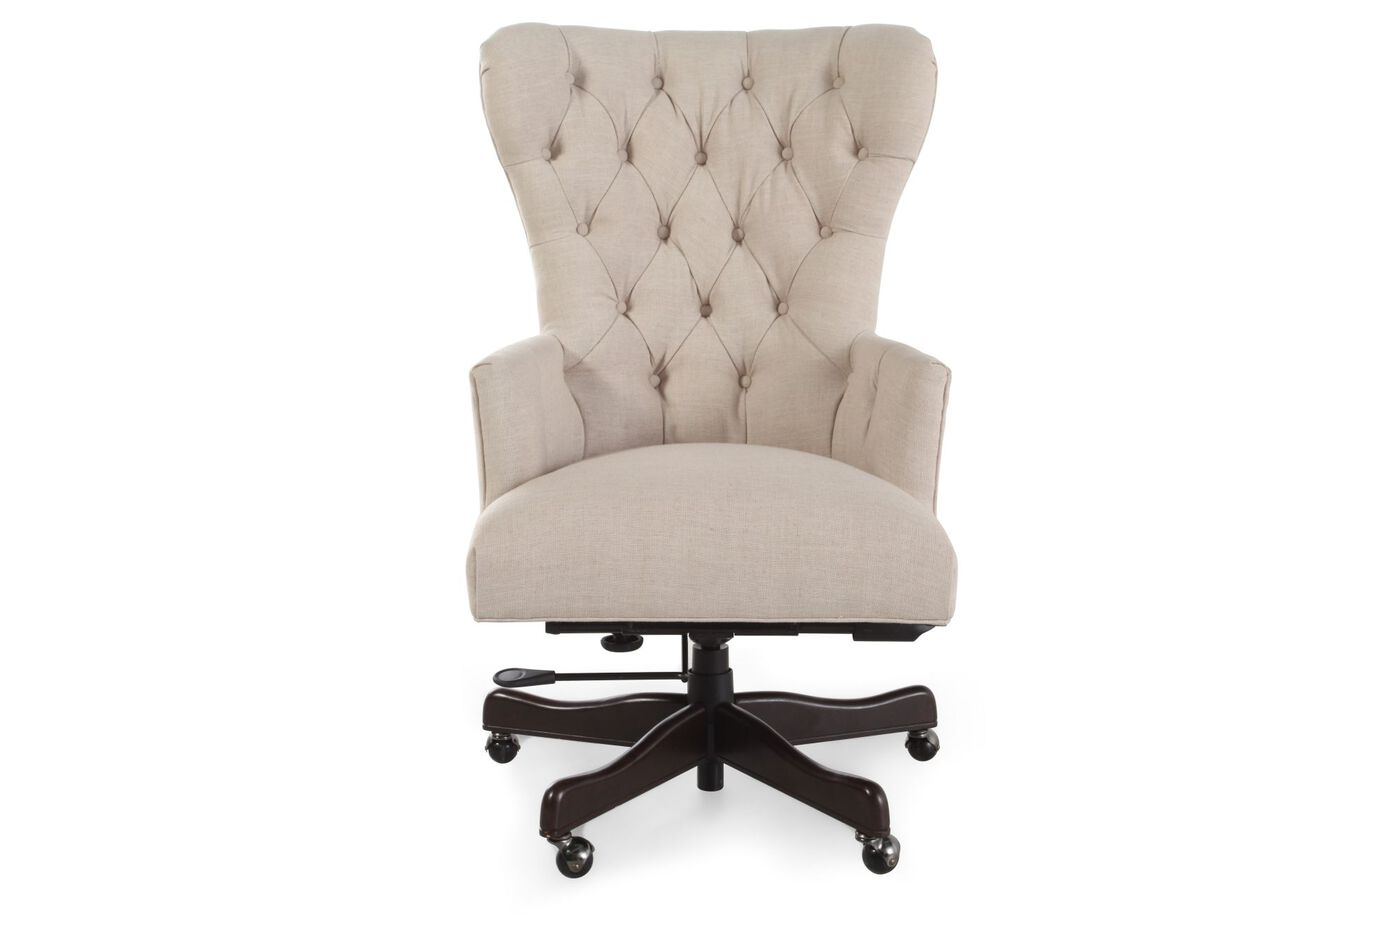 bradington young larkin oat fabric desk chair | mathis brothers